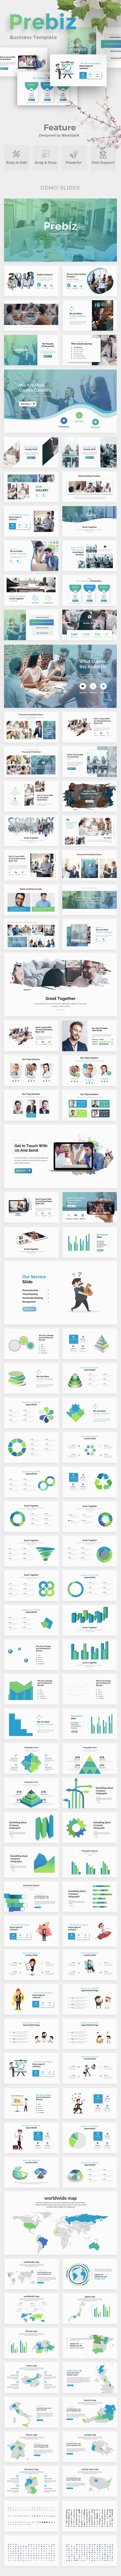 Prebiz Business Google Slide Template - Google Slides Presentation Templates